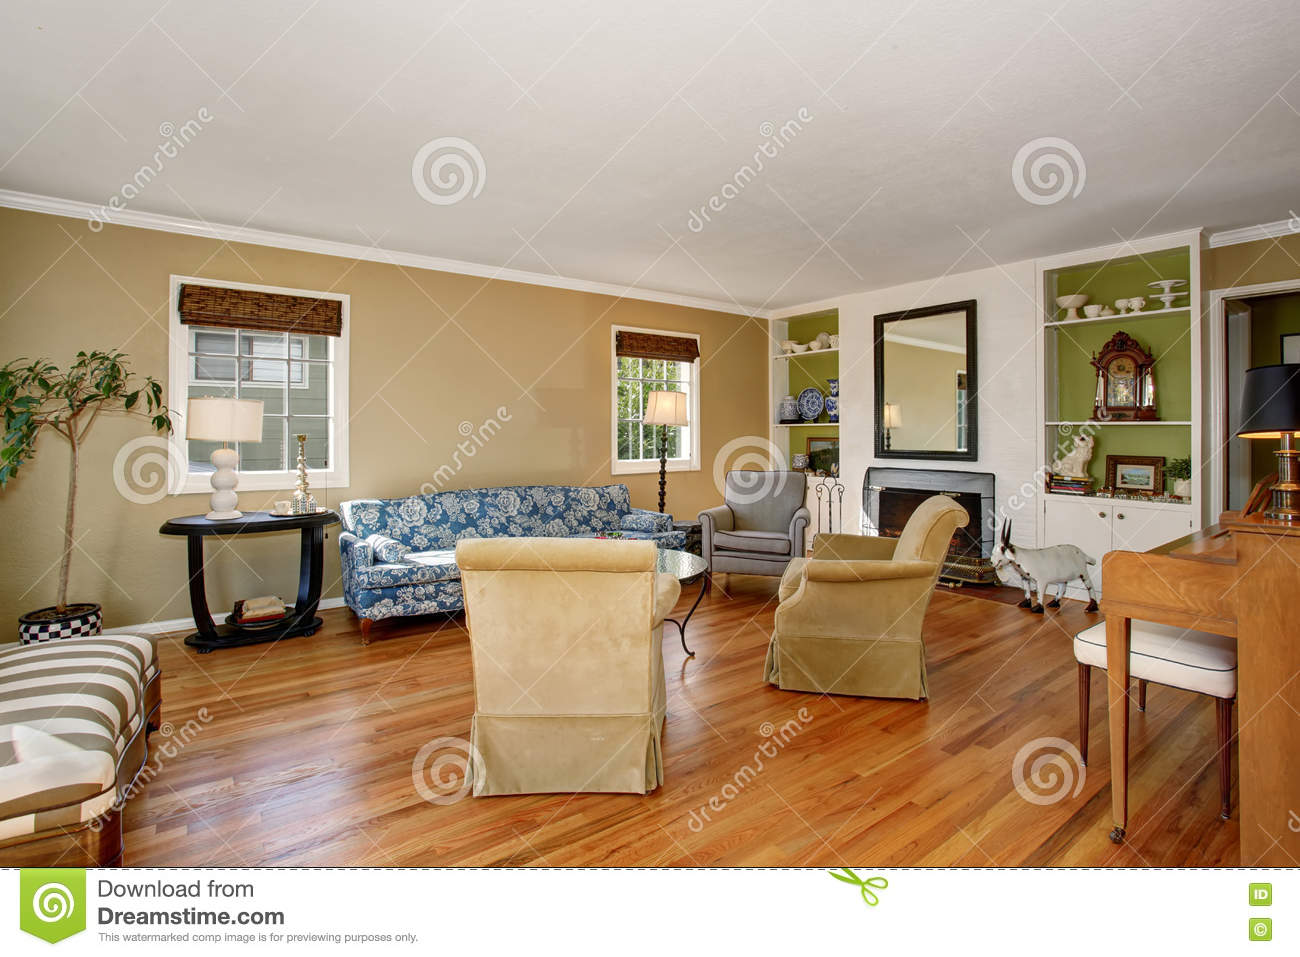 American Classic Living Room Design Classic American Living Room Interior Beige And Green